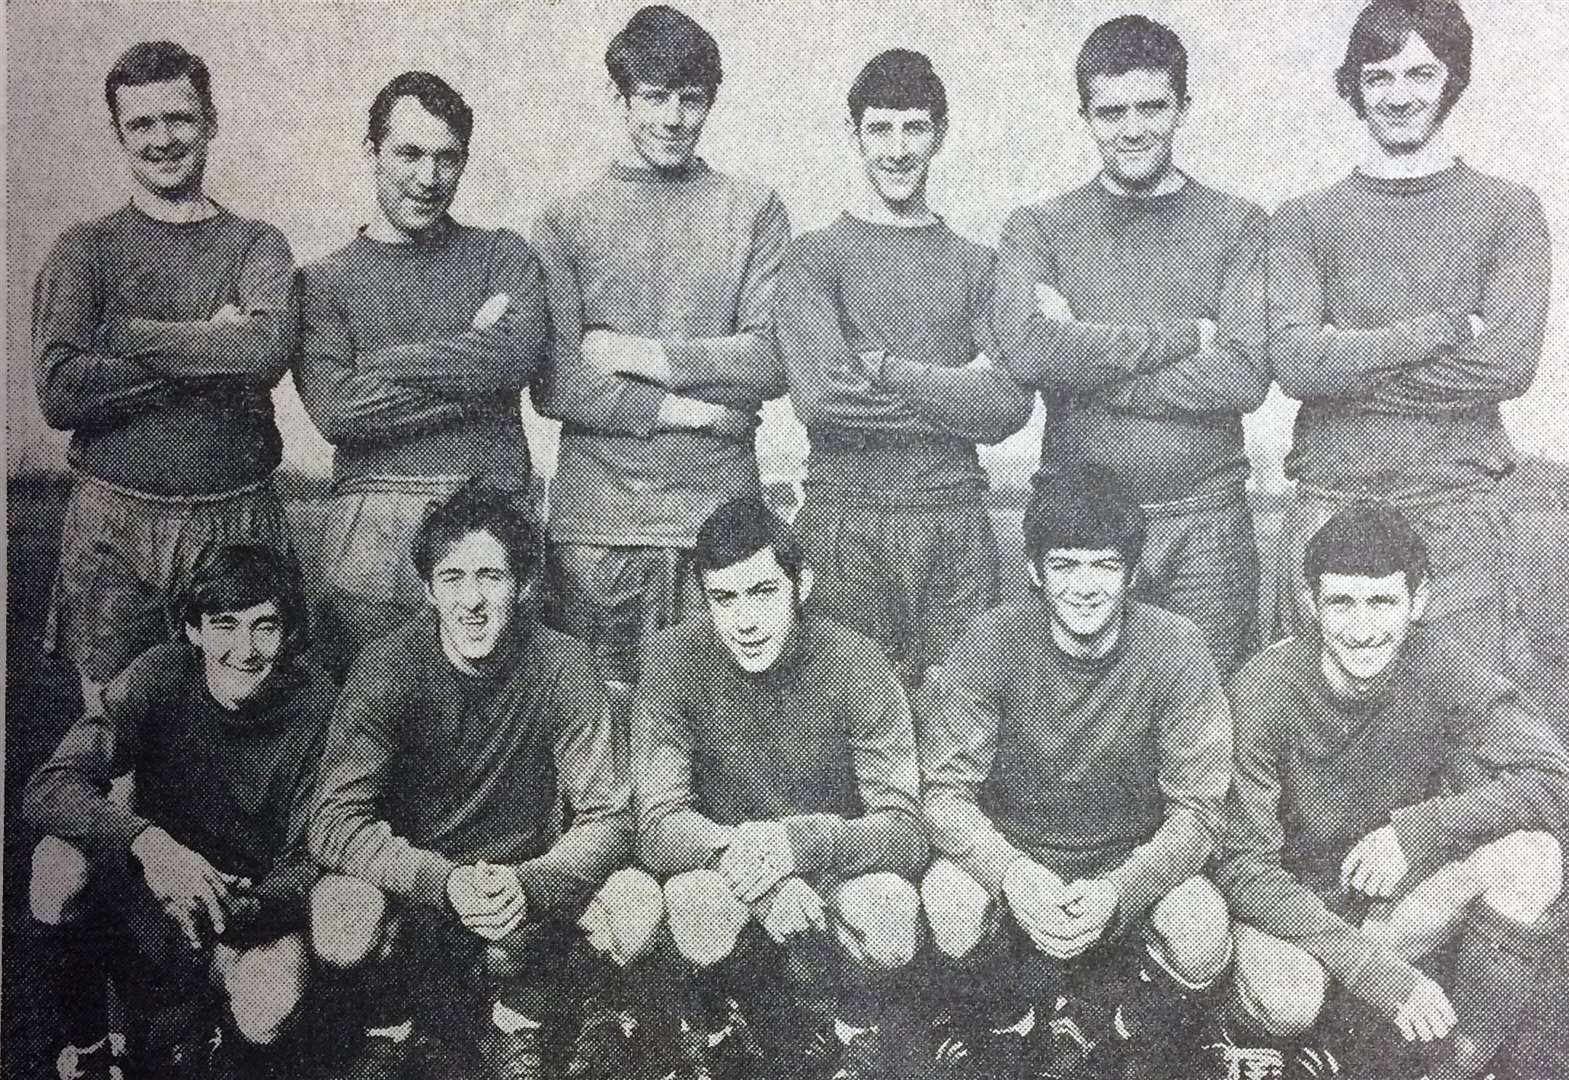 Fosters football team played in the Premier Division